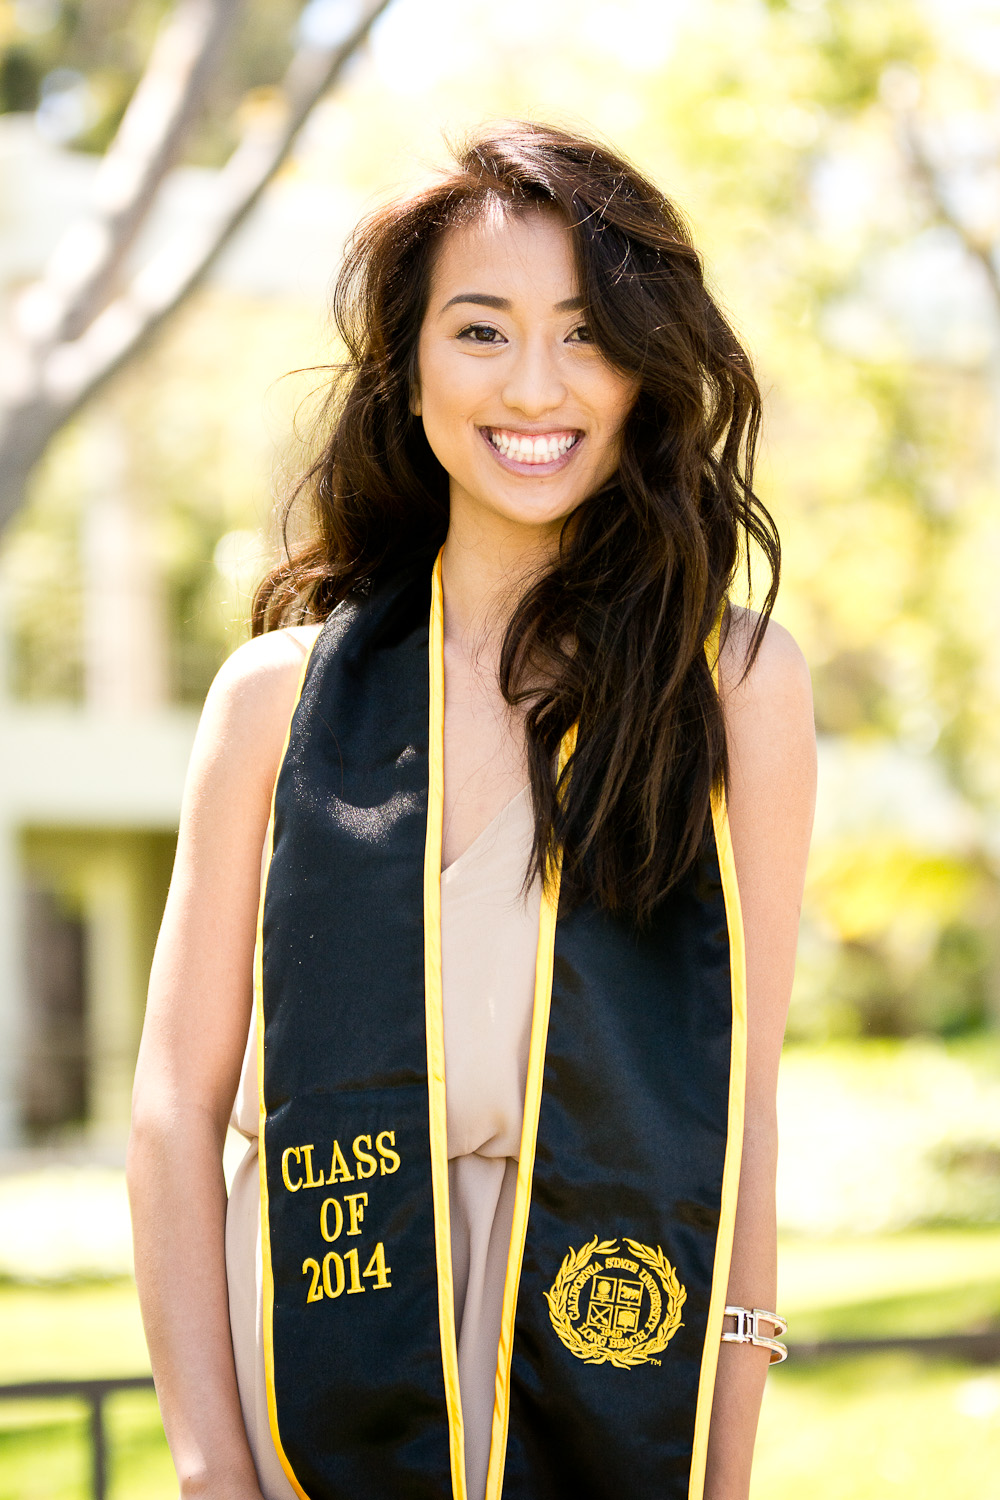 Bryan-Miraflor-Photography-Chelsea-Chow-Grad-Pictures-CSULB-20140430-0004.jpg